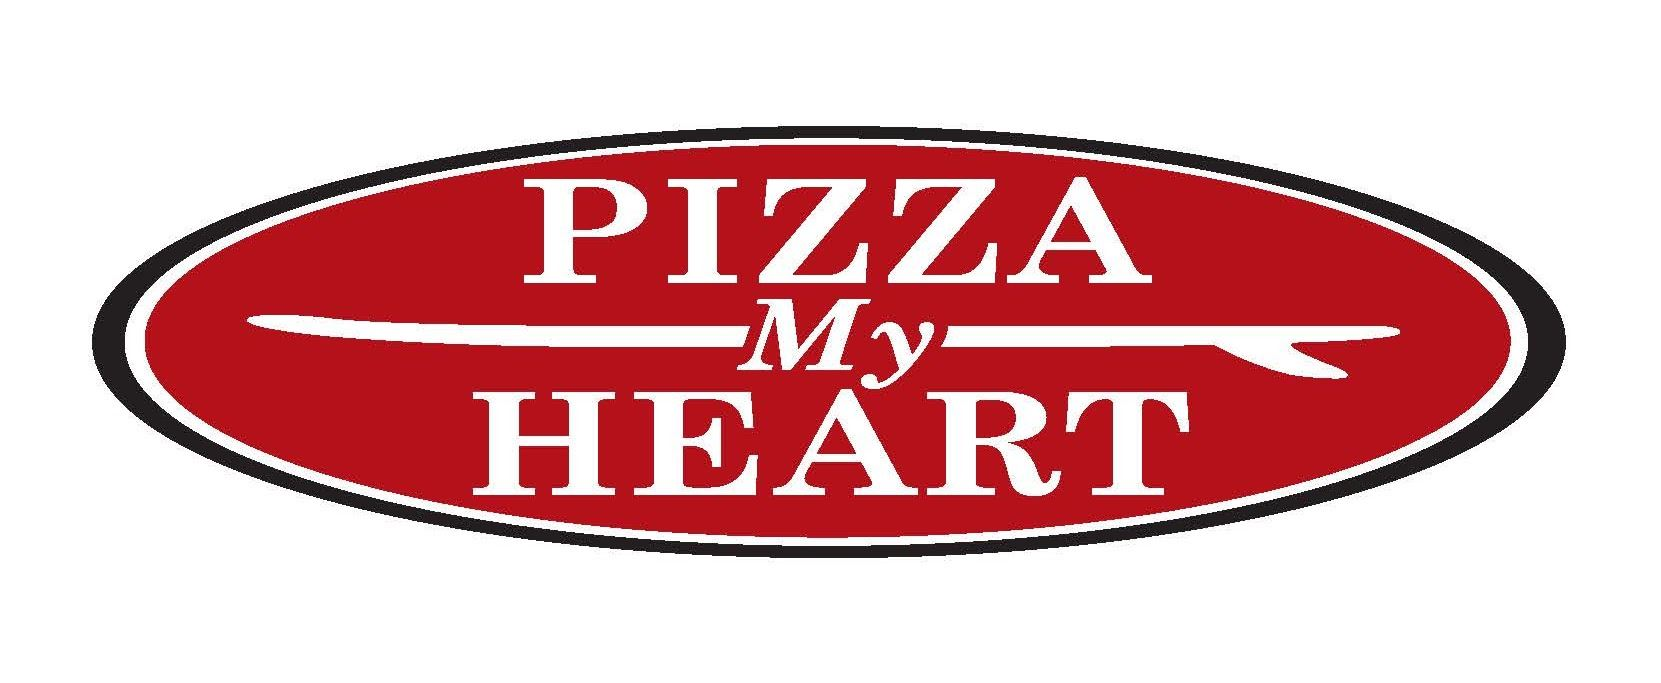 Image of Pizza My Heart logo.